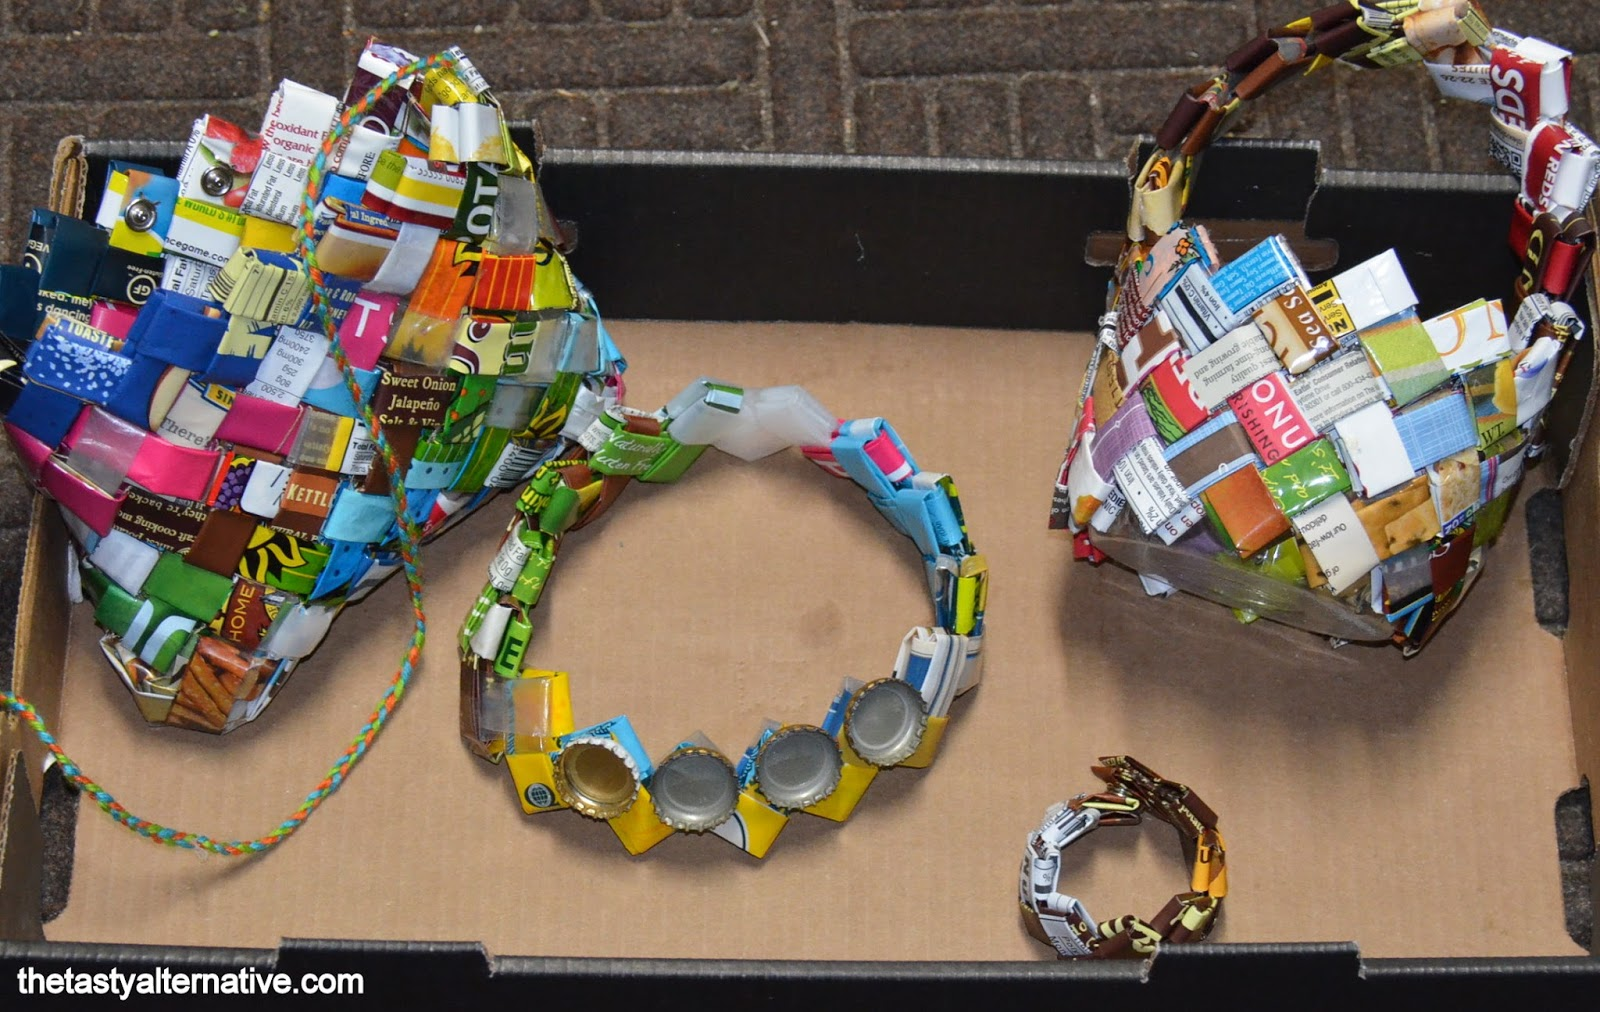 Waste material activity easy arts and crafts ideas for Homemade items from waste materials